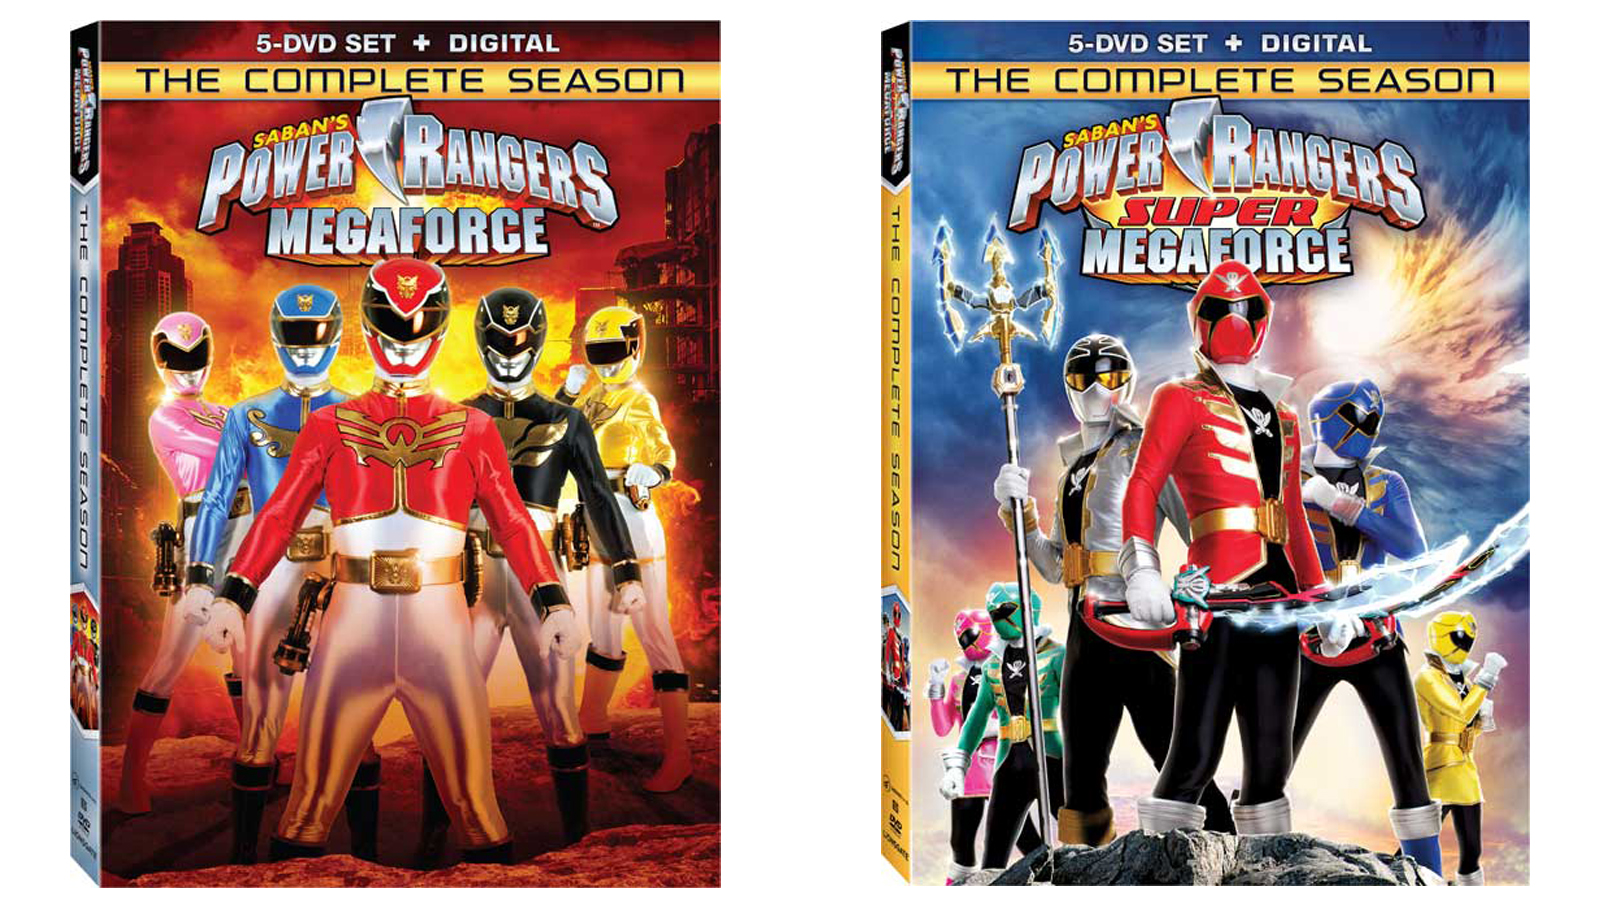 Power Rangers Megaforce & Super Megaforce Complete Season DVDs Announced